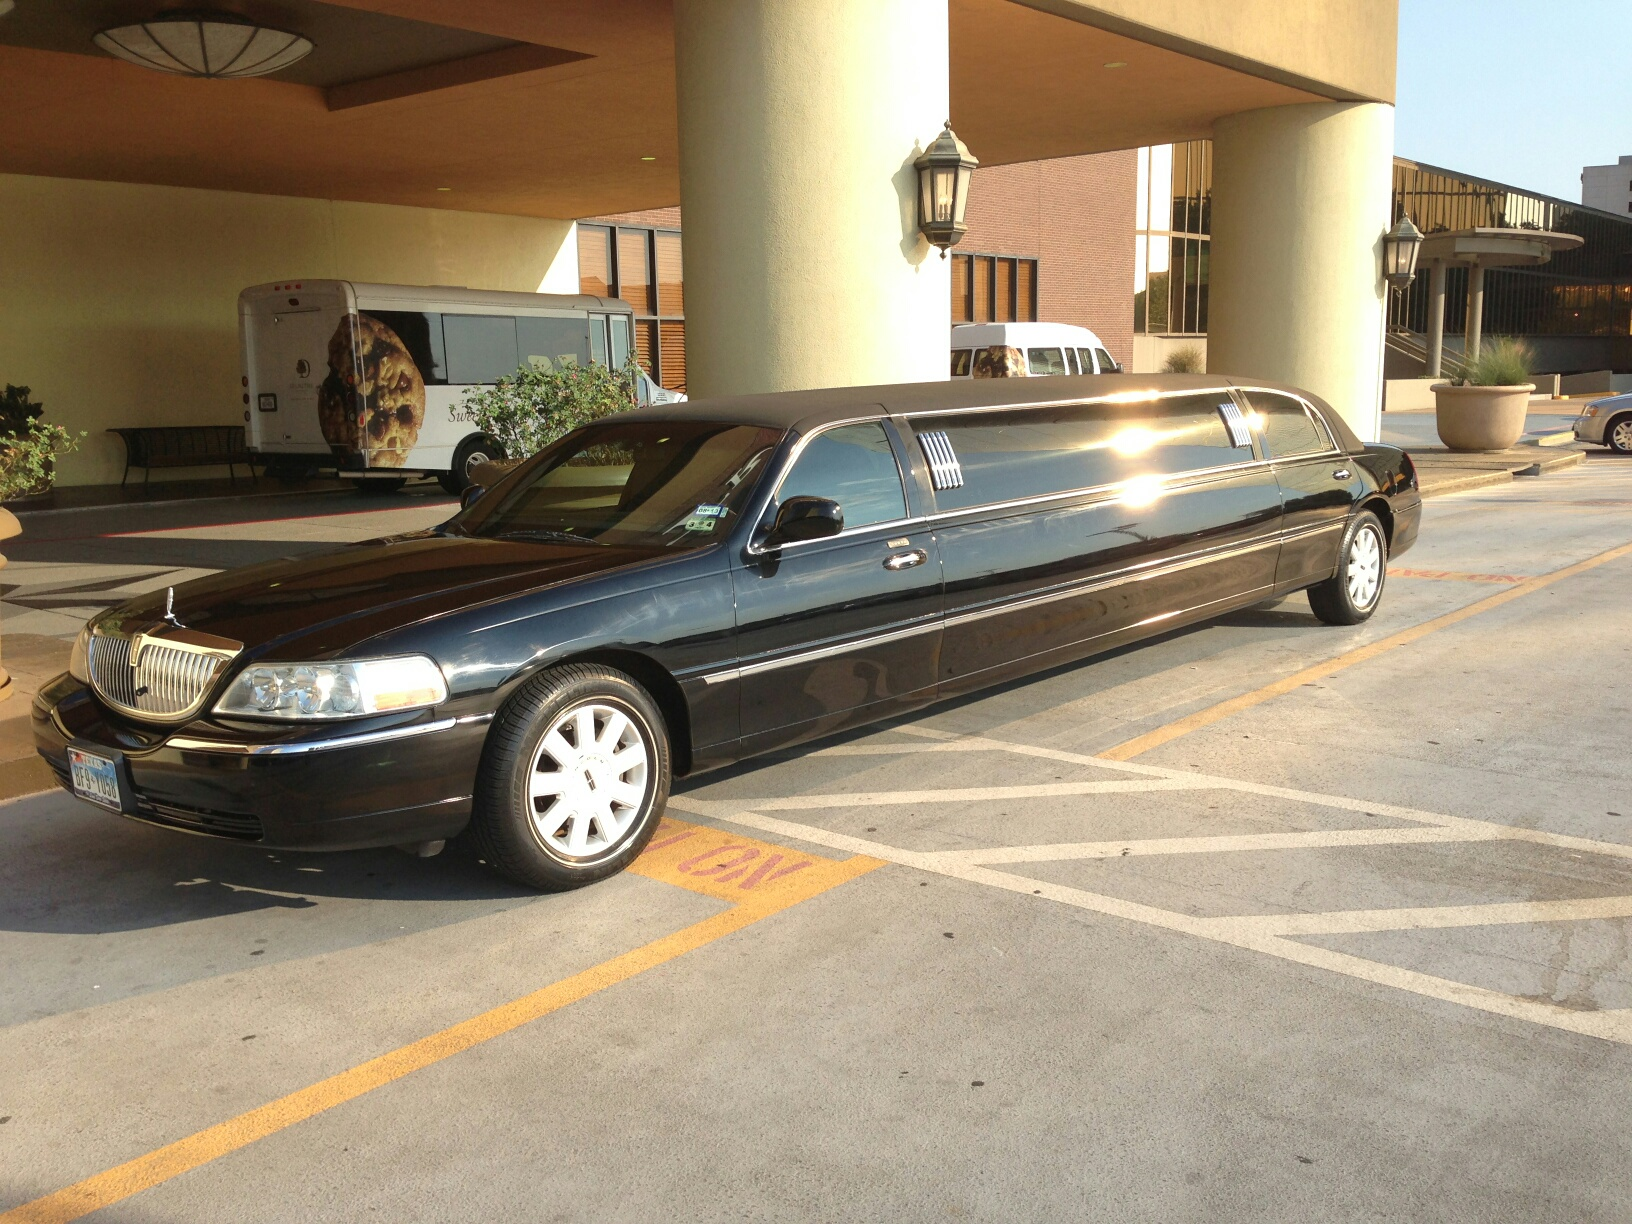 Stretch Limousine Limo  / Richardson, TX   / Hourly $0.00